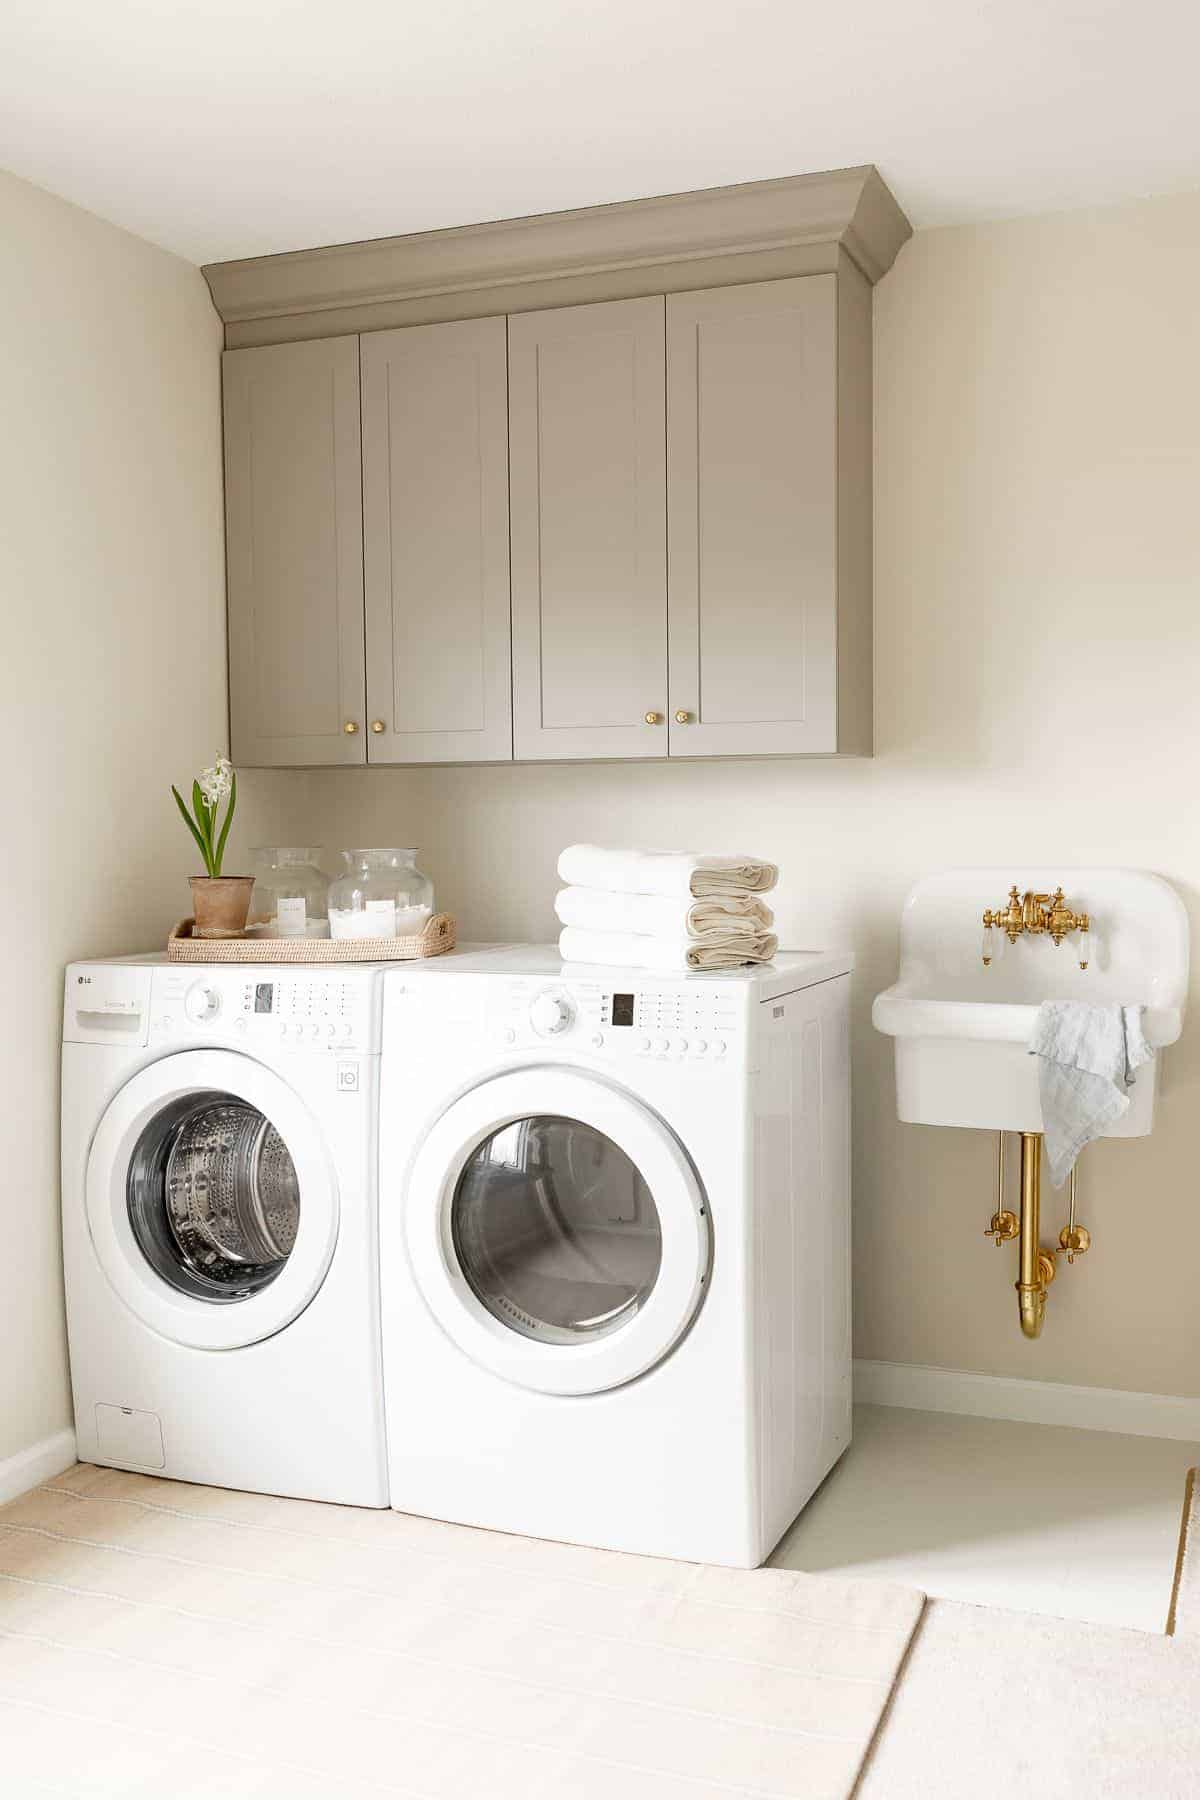 A laundry room with gray cabinets and a small wall sink.